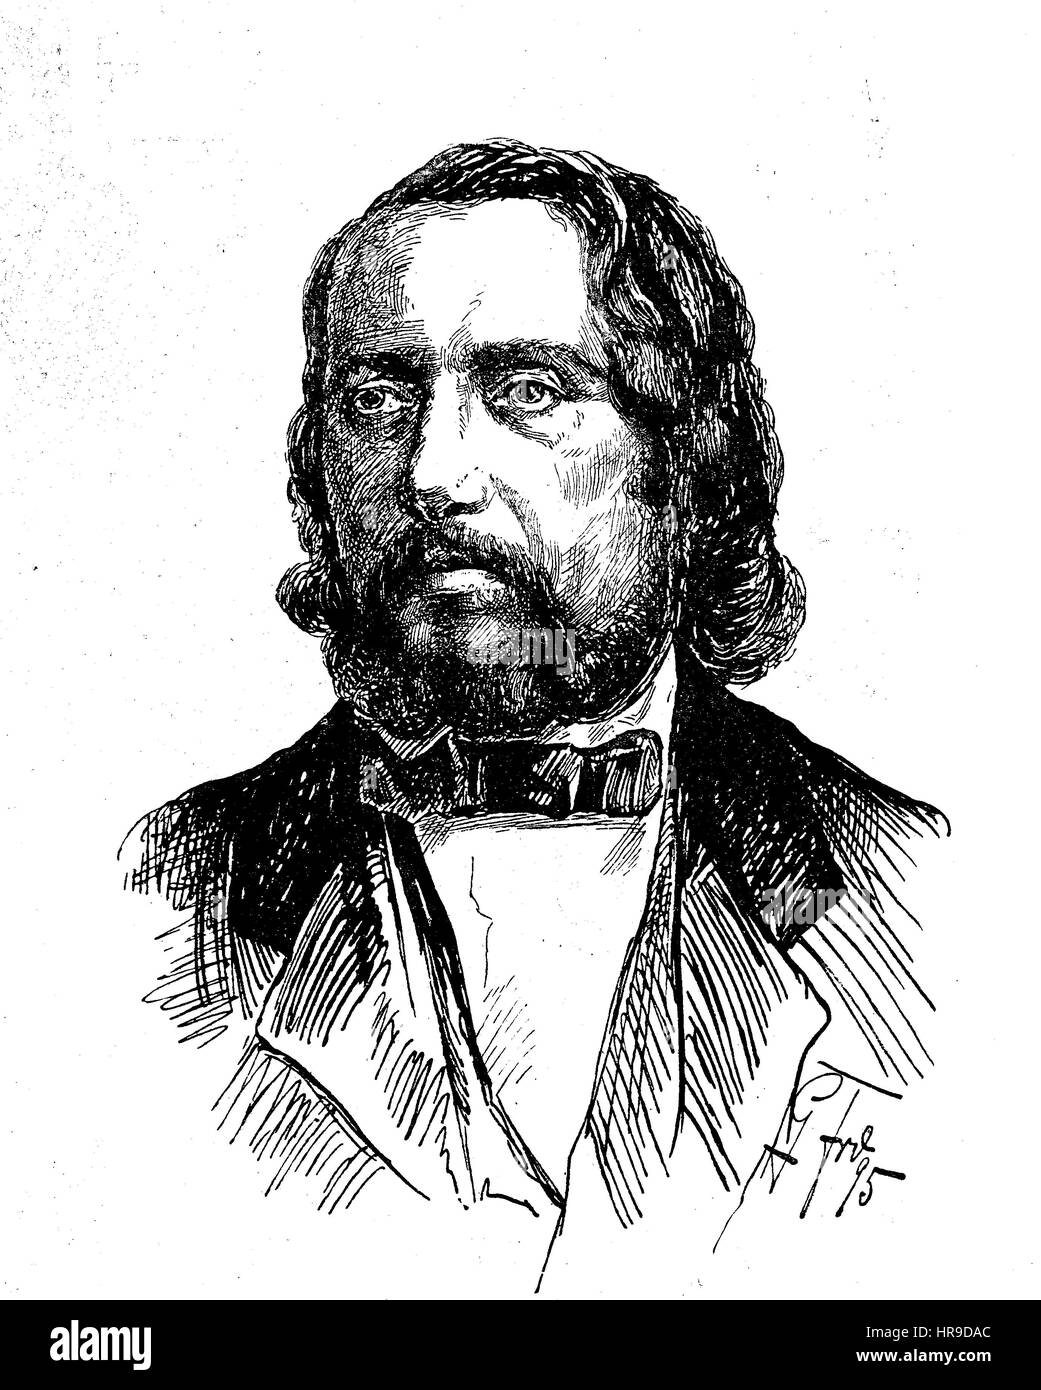 Karl Wilhelm, also Carl Wilhelm, 1815 - 1873, was a German choral director. He is best known as the composer of - Stock Image